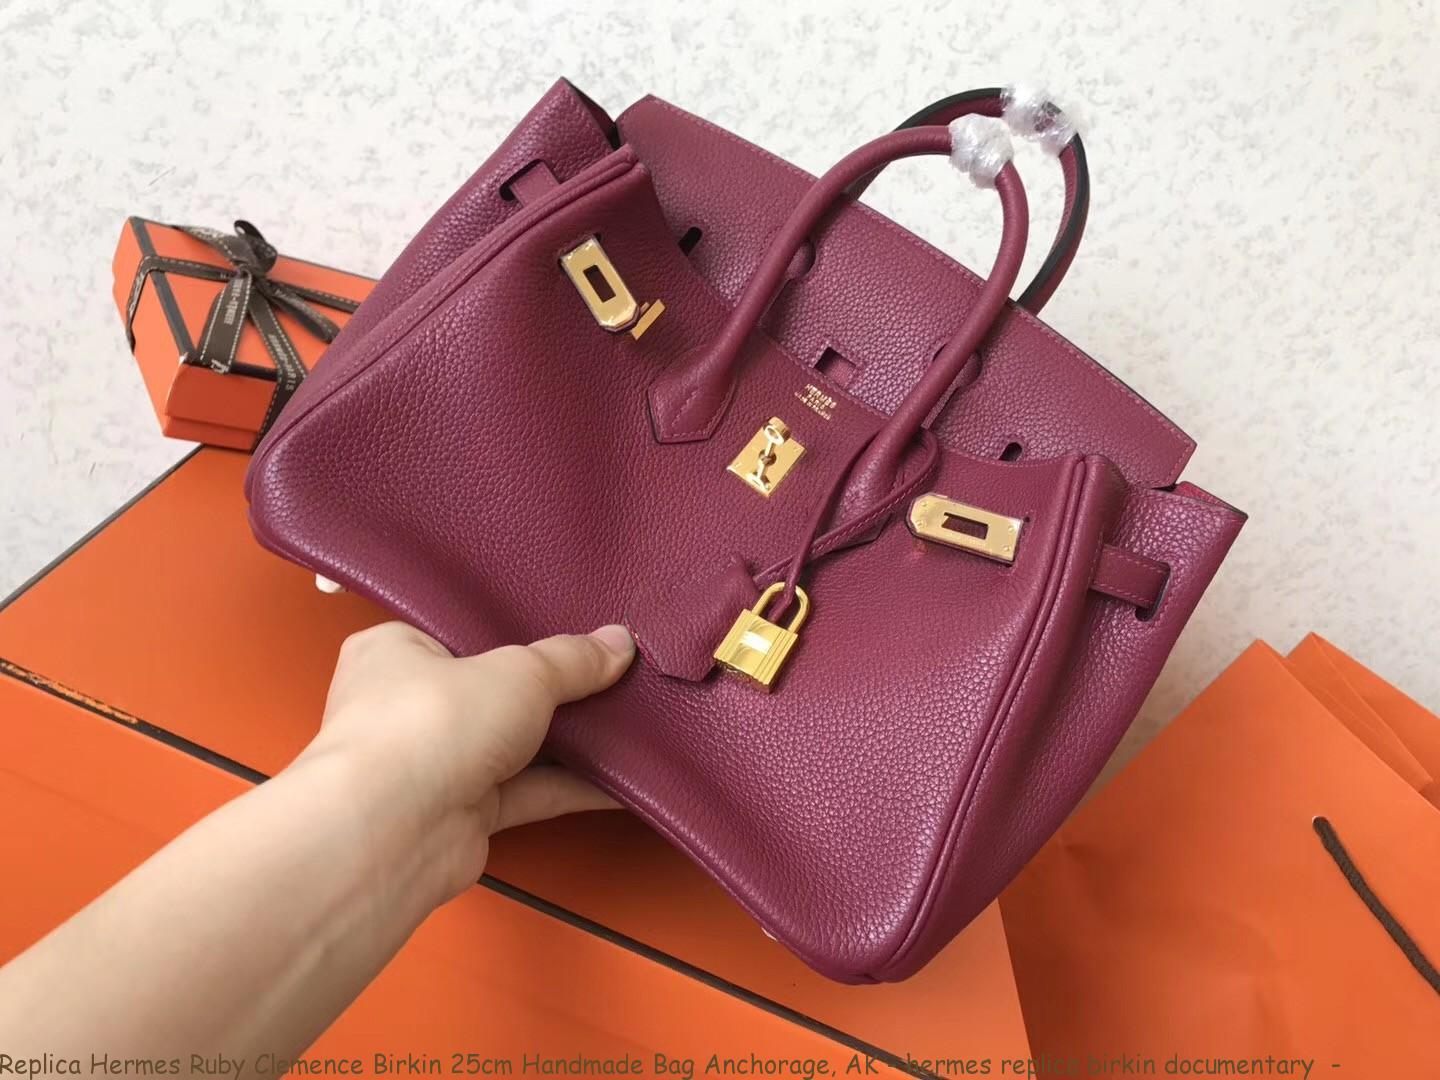 df744c2412d Replica Hermes Ruby Clemence Birkin 25cm Handmade Bag Anchorage, AK ...